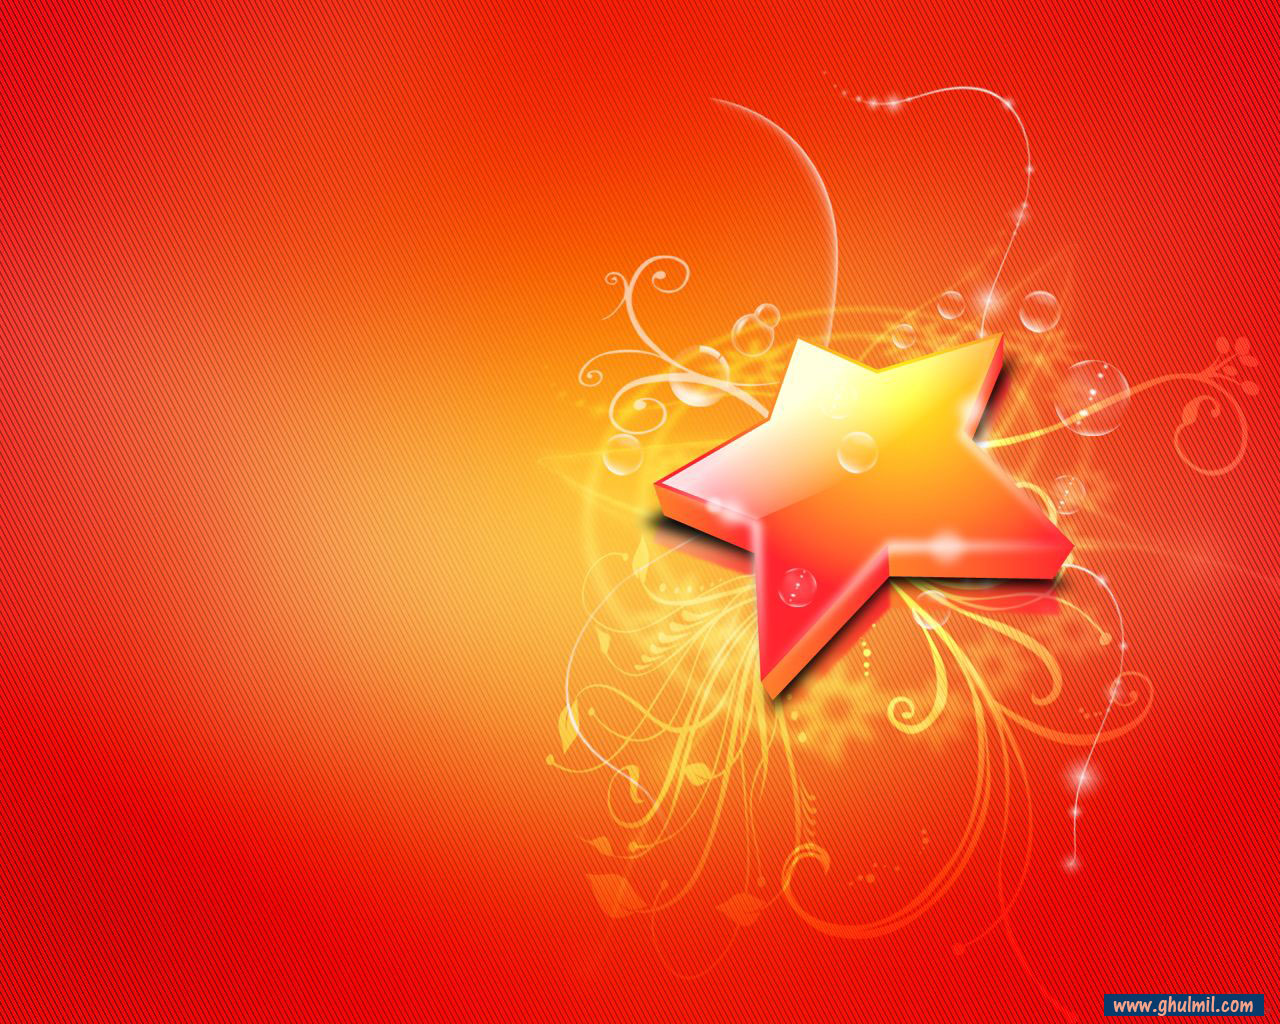 3d very beautiful hd quality star wallpaper for laptops background | E ...